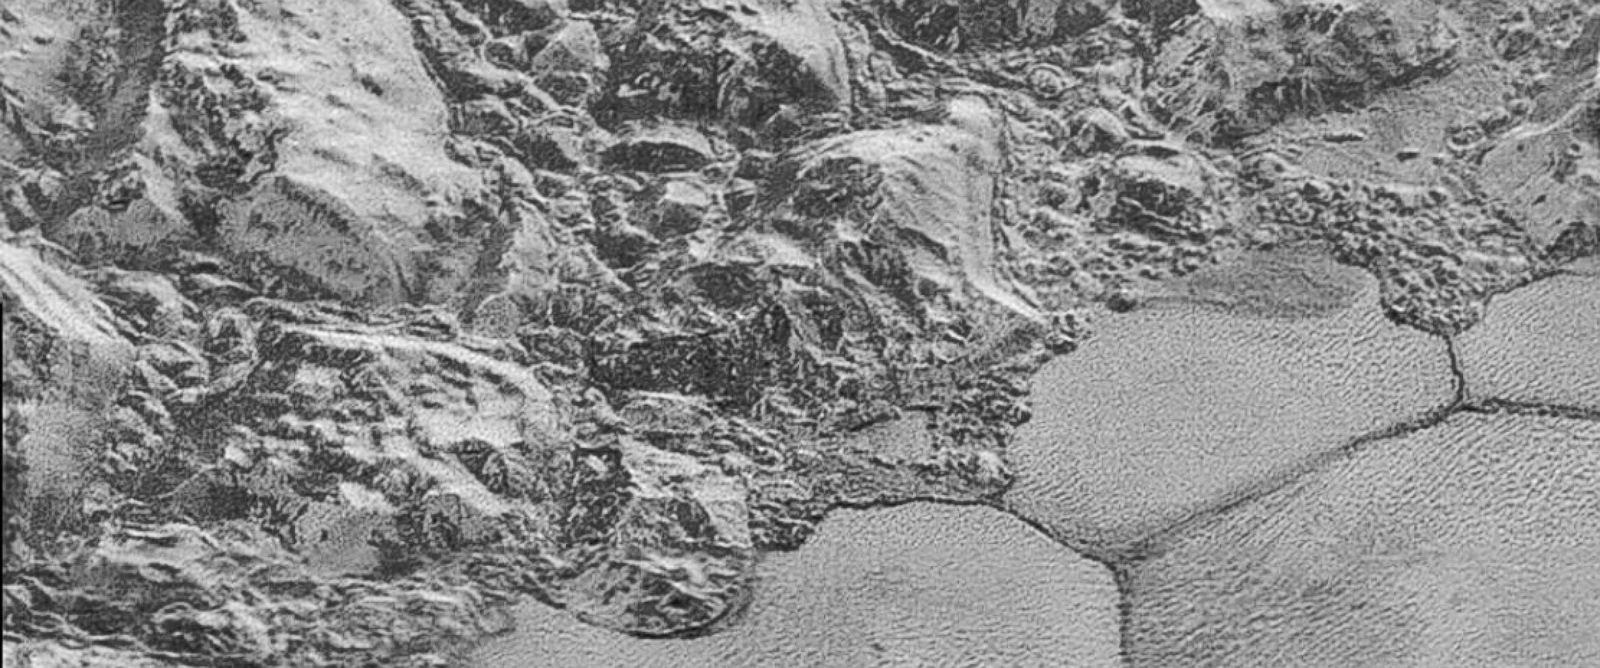 PHOTO: New Horizons sent back a close-up of Plutos surface.